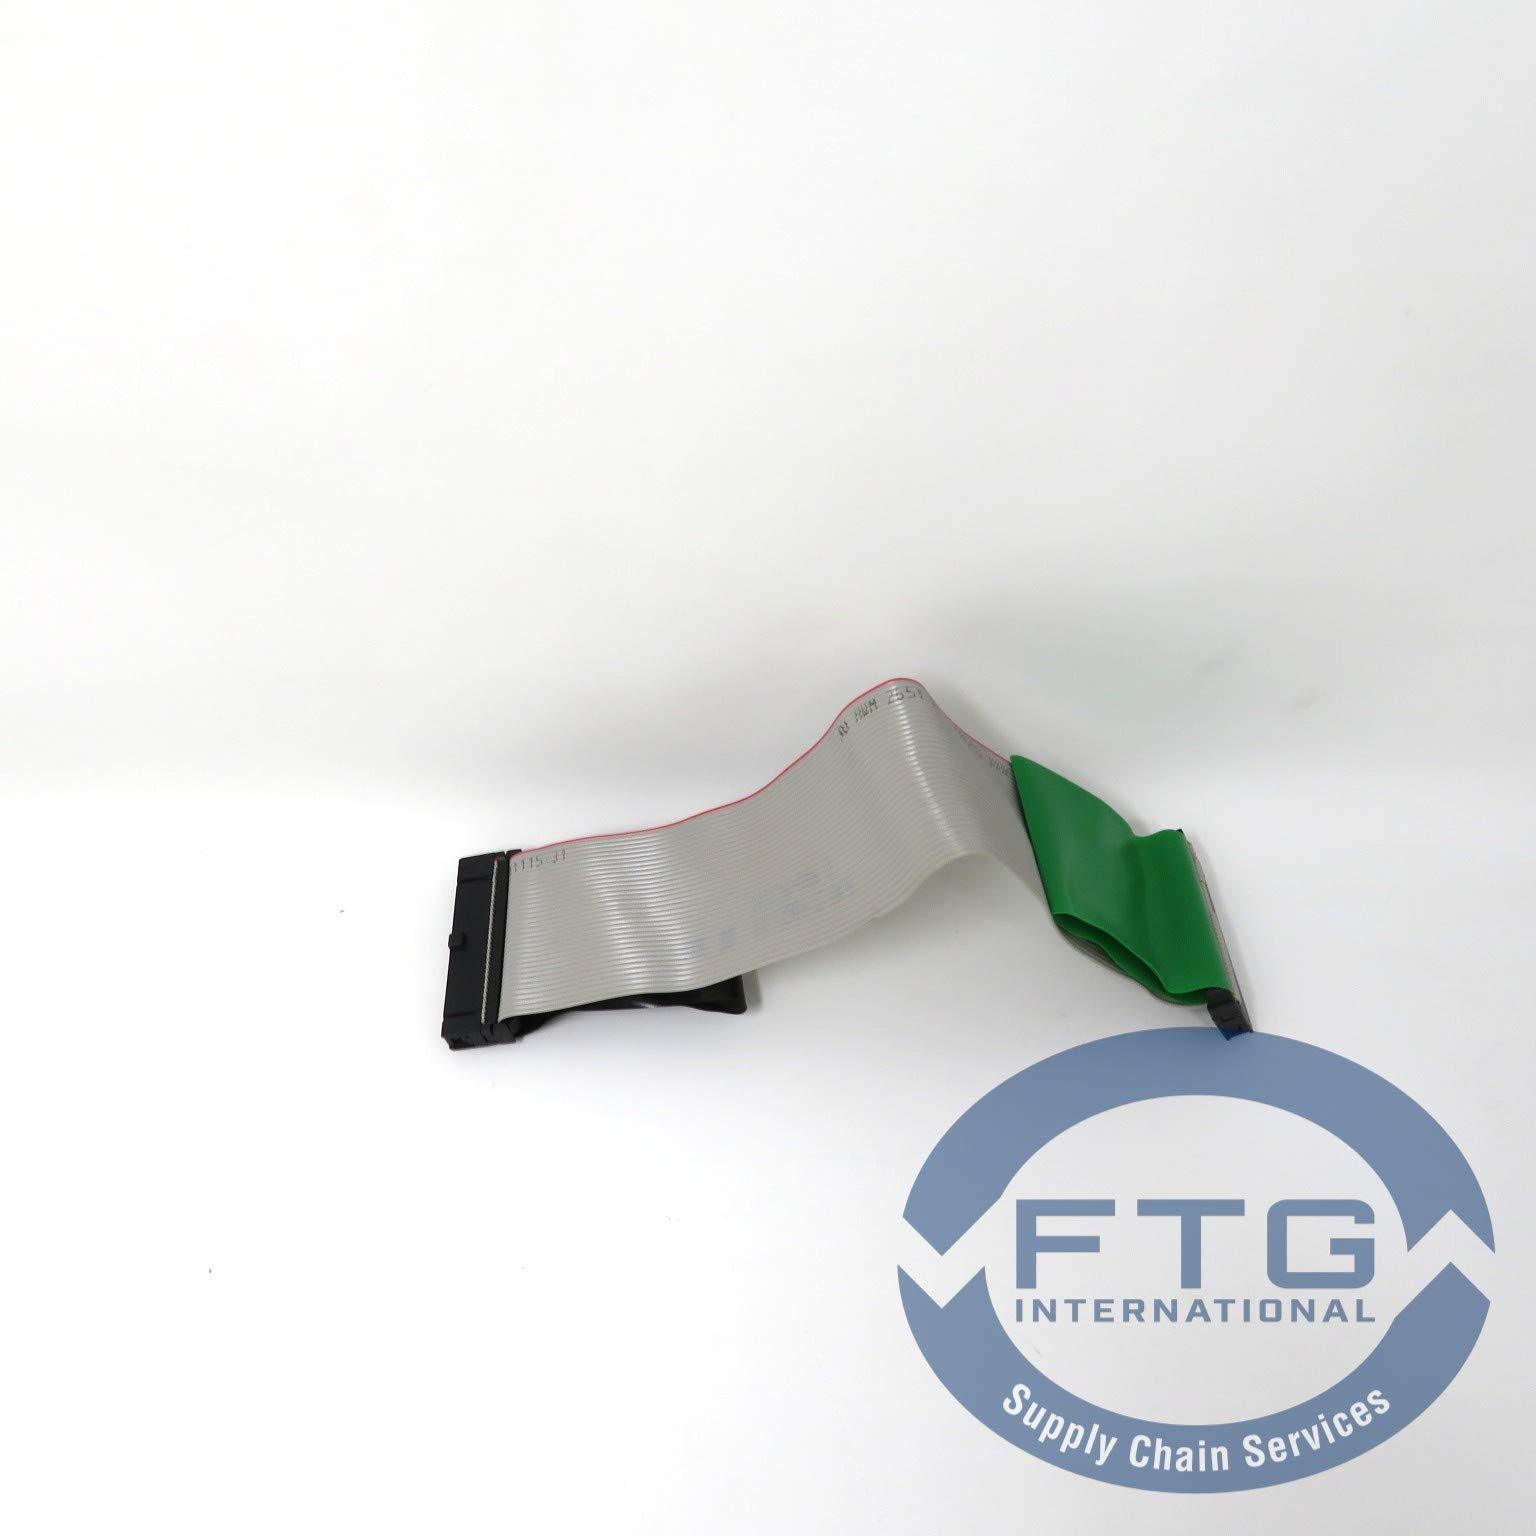 143218-006 8'' 34-PIN Floppy/Disk Drive Data Cable